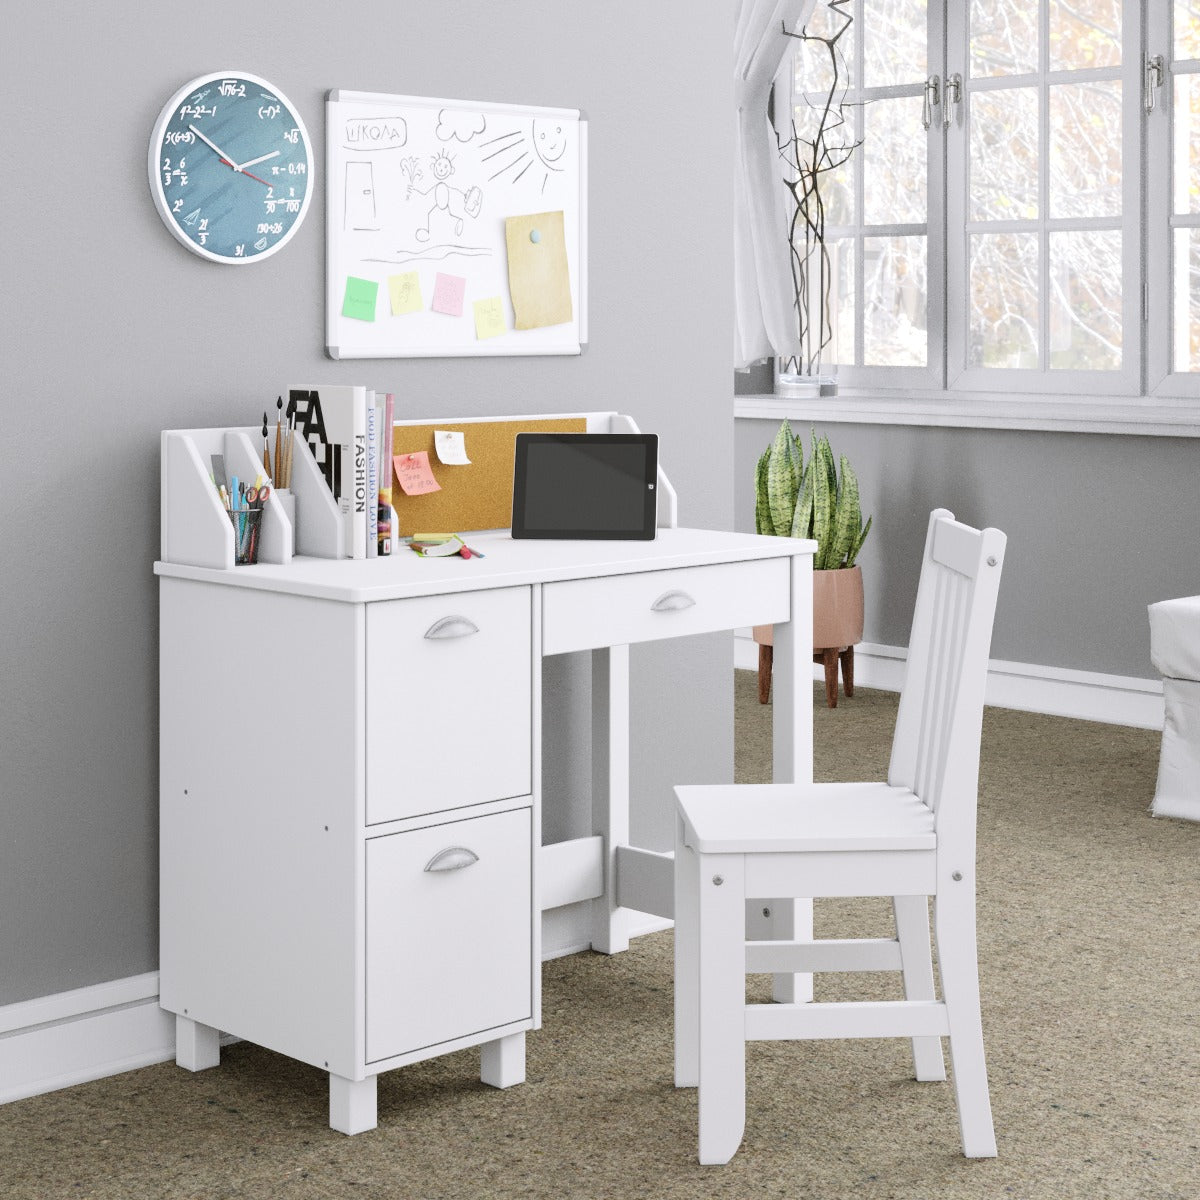 P'kolino Kids Desk and Chair in white. Deep, spacious drawers provide ample storage and make clean up a breeze. The playful, cork board is a convenient spot for reminders, to-do lists and more! A roomy desktop makes a functional workspace with cubbies!